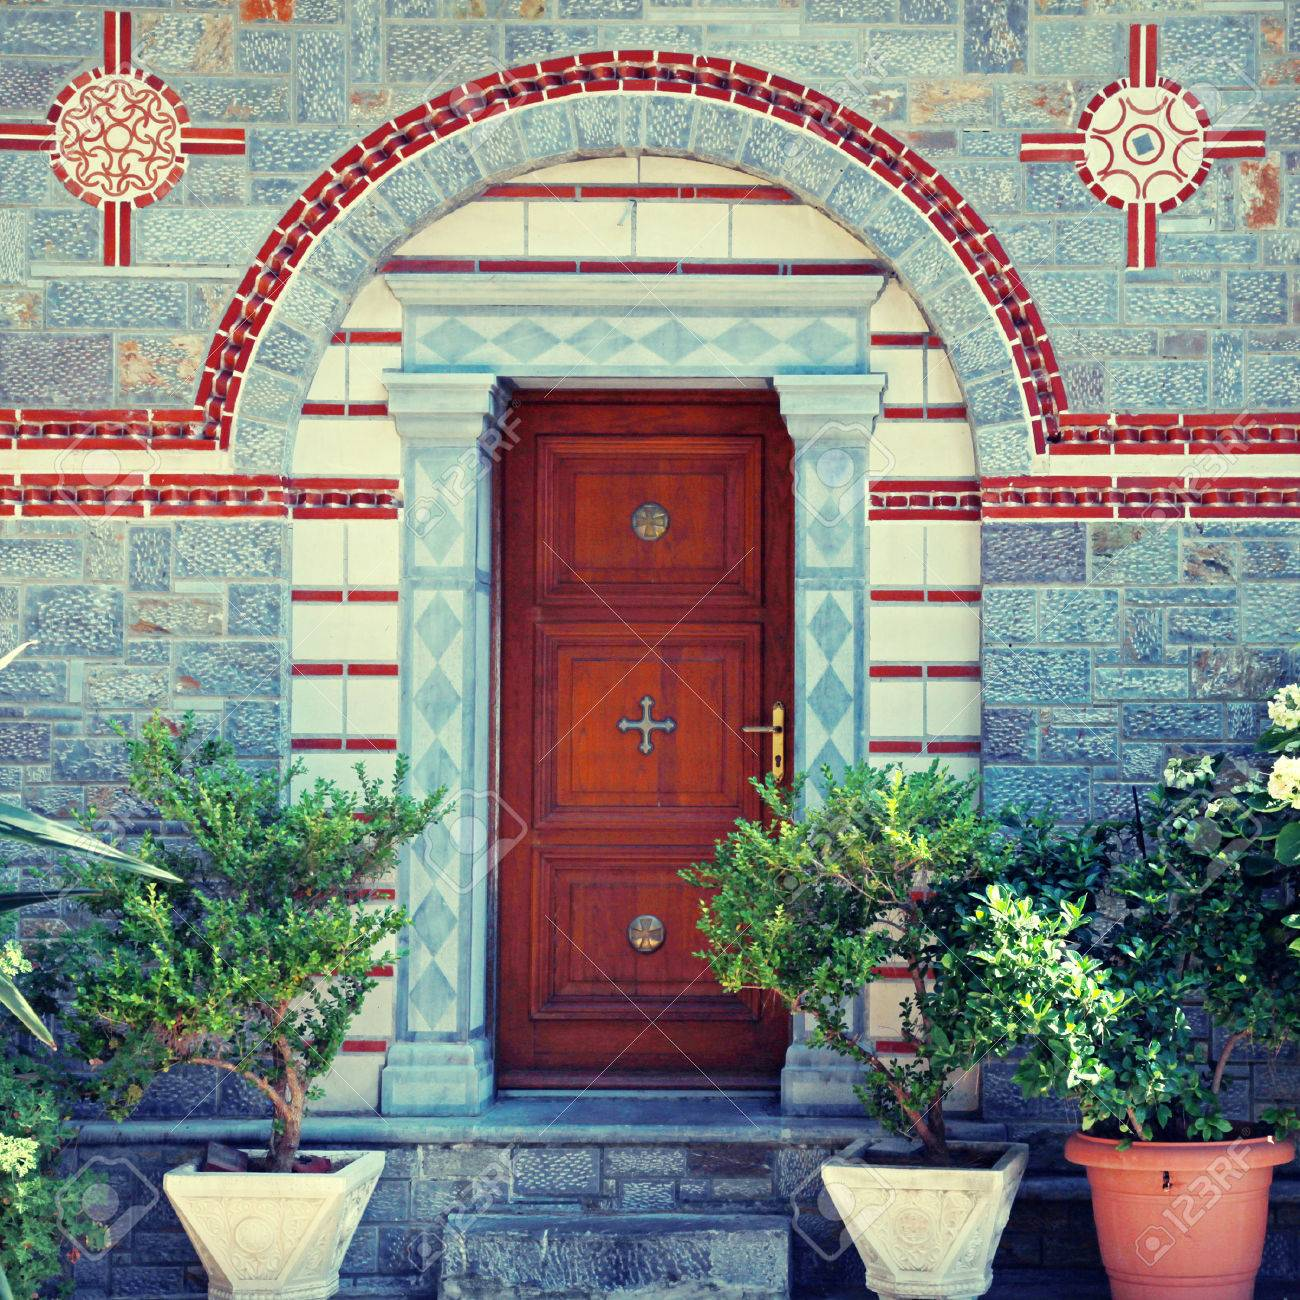 view with ornate front door entrance and flower pots in beautiful